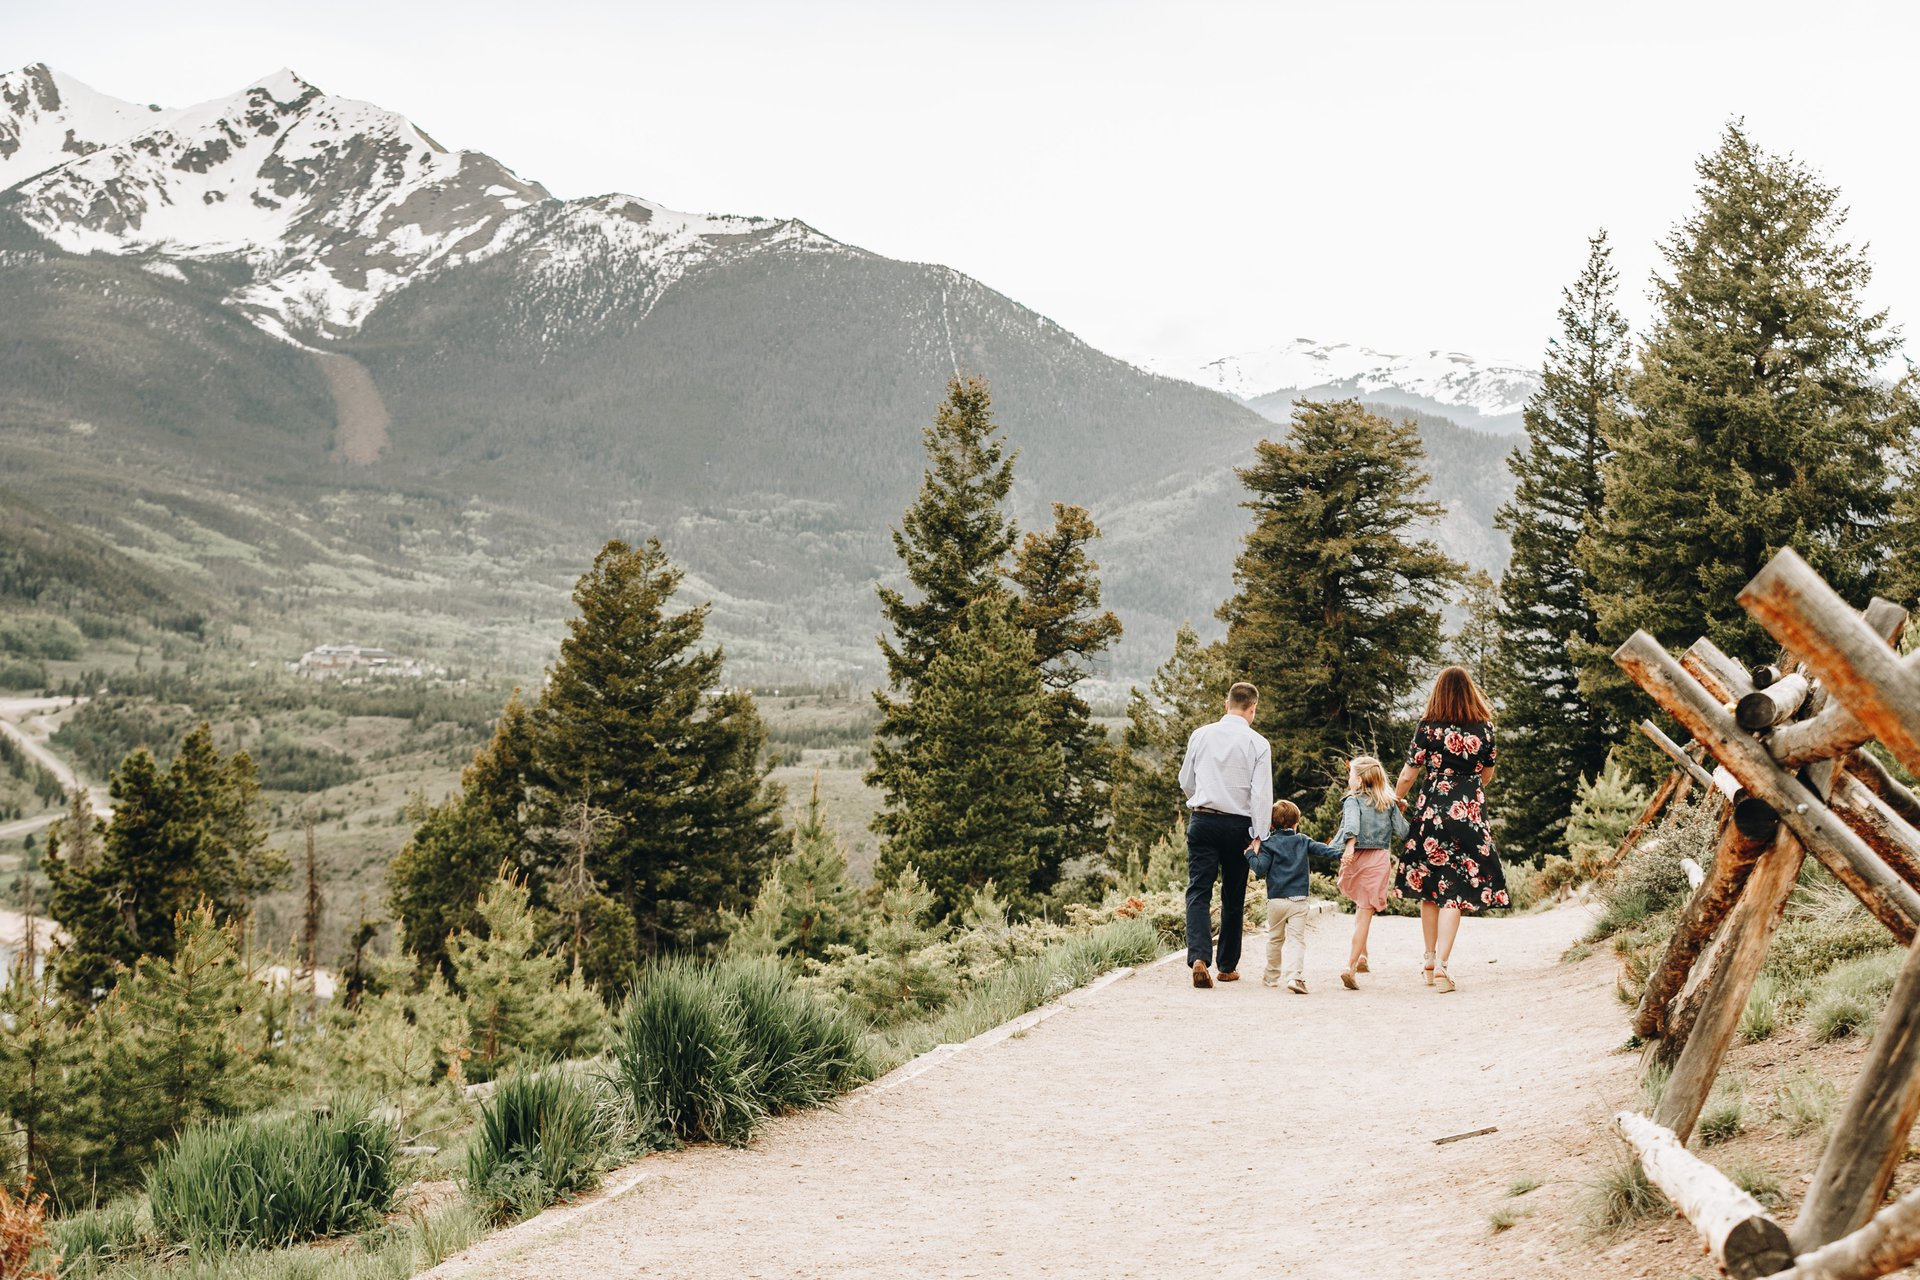 Breckenridge-United States-travel-story-Flytographer-12